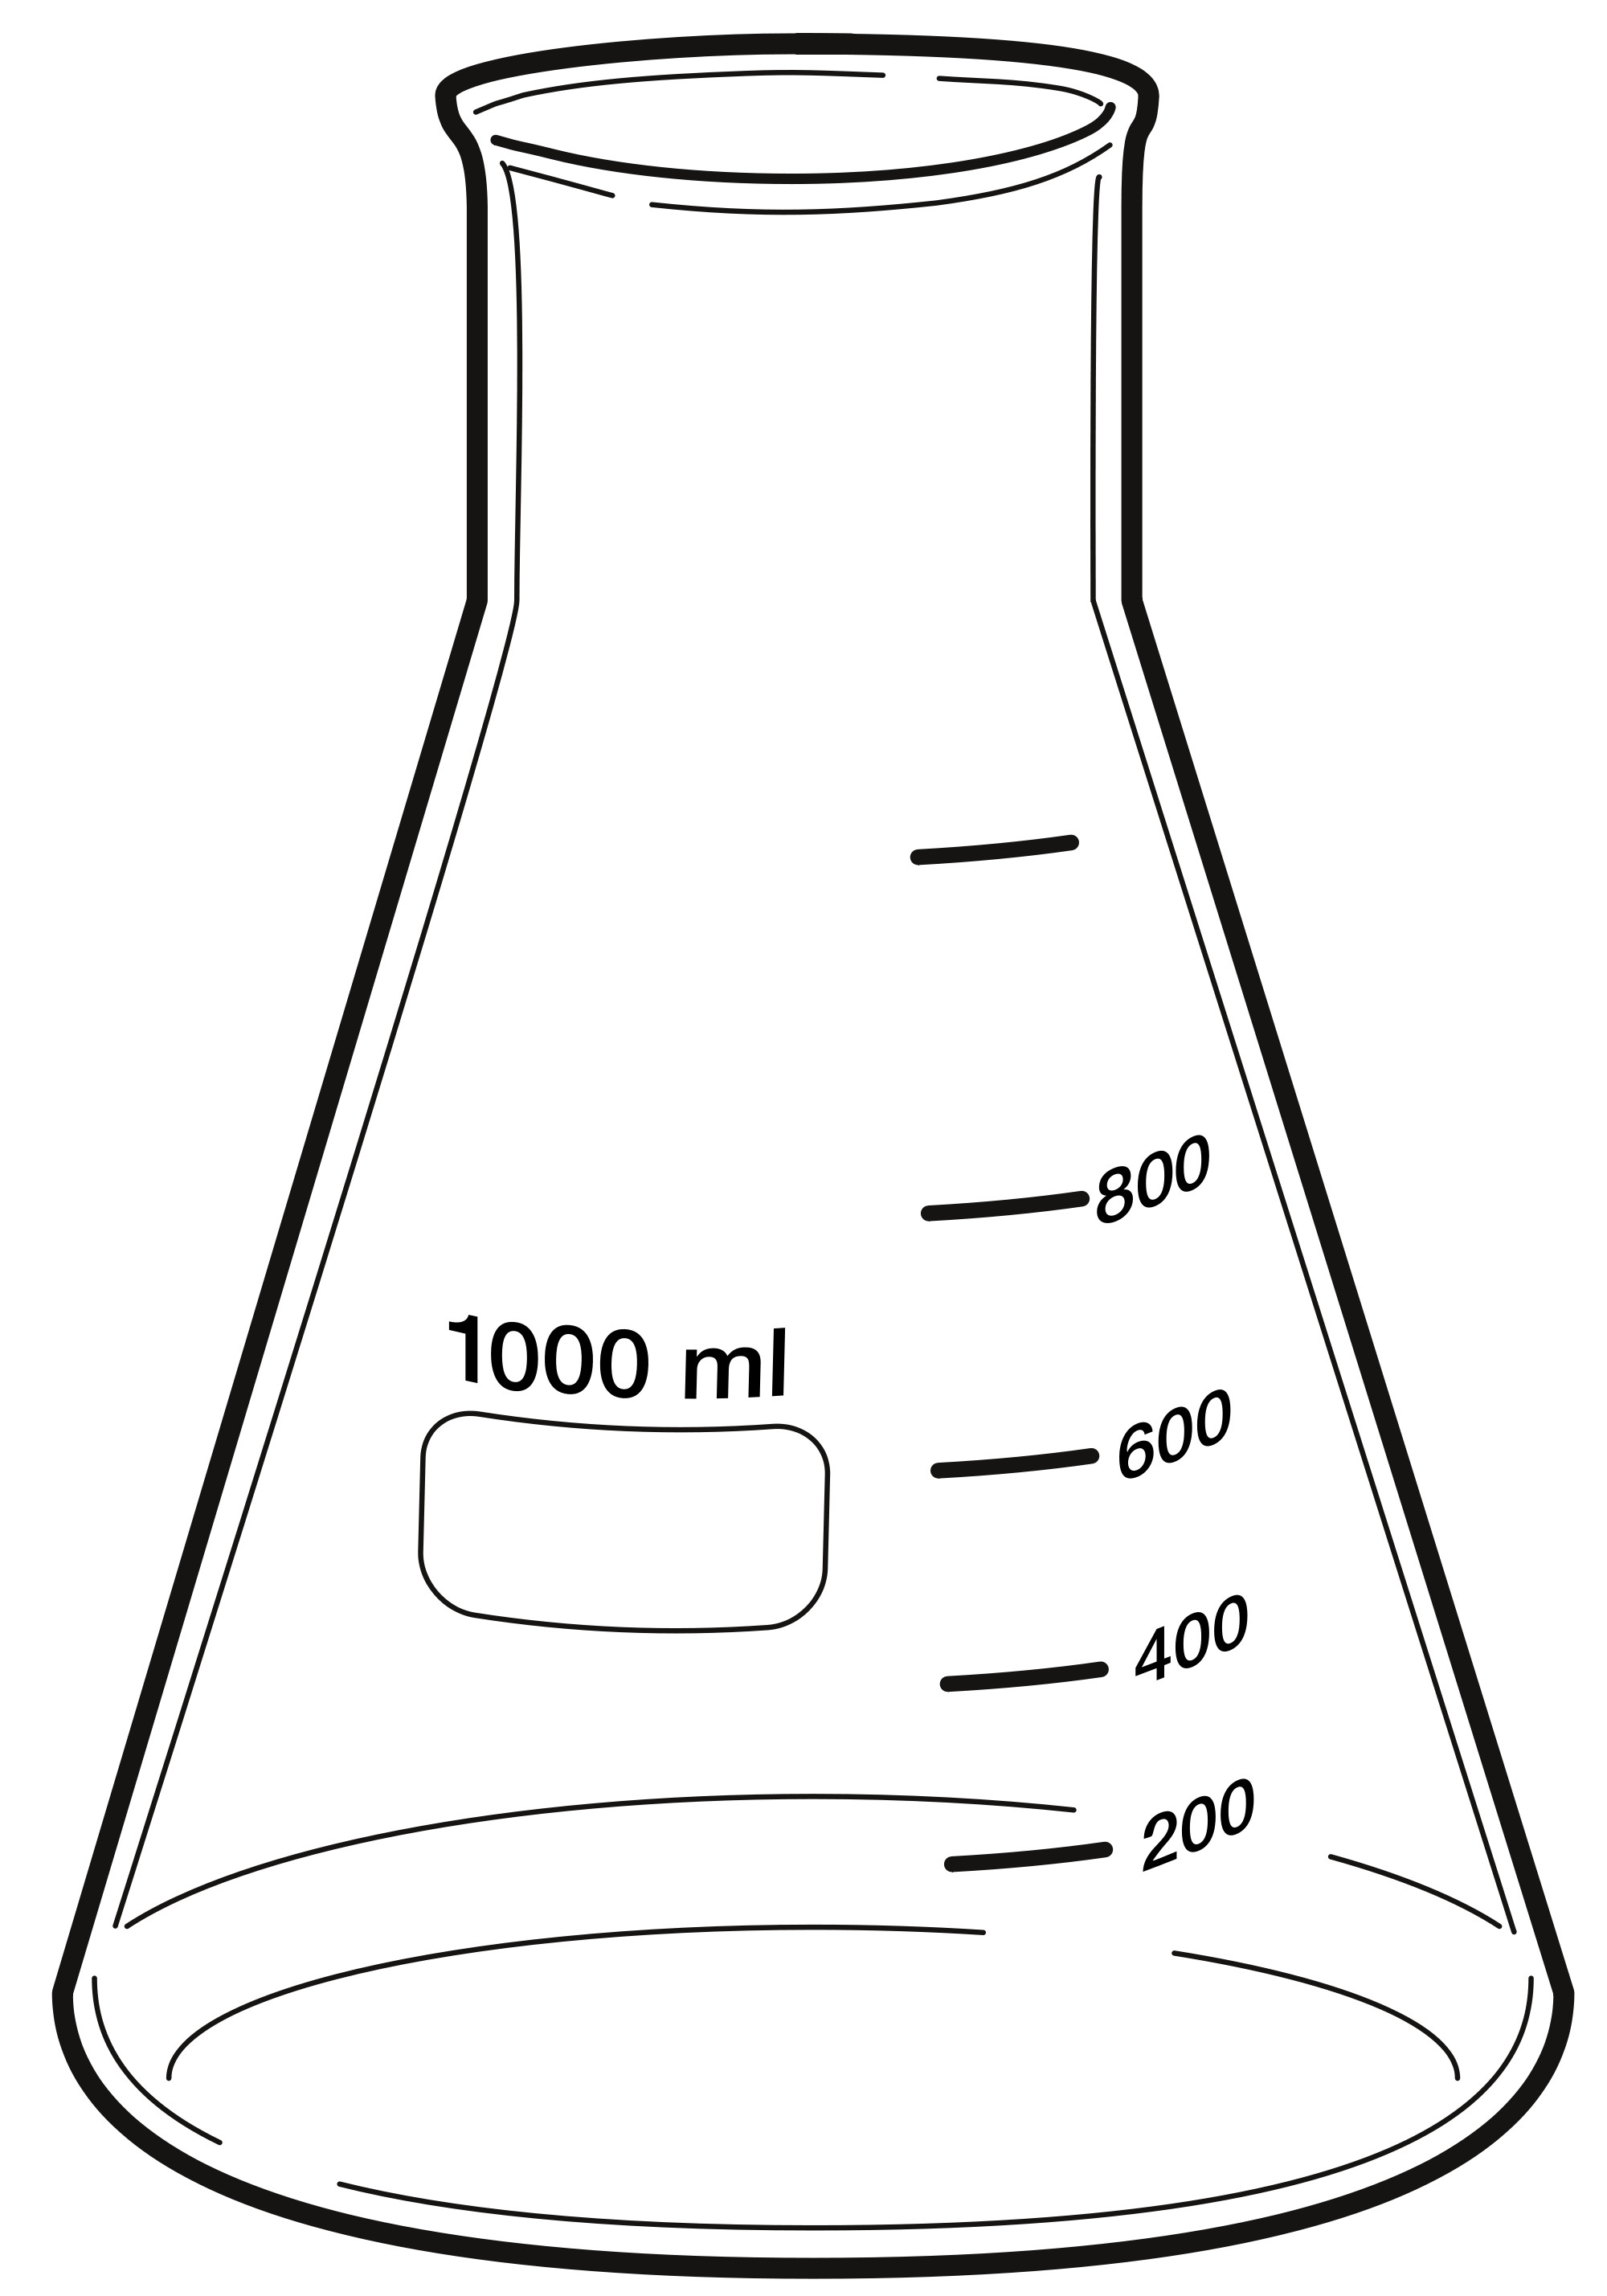 Erlenmeyer flask acur lunamedia. Clipart definition black and white